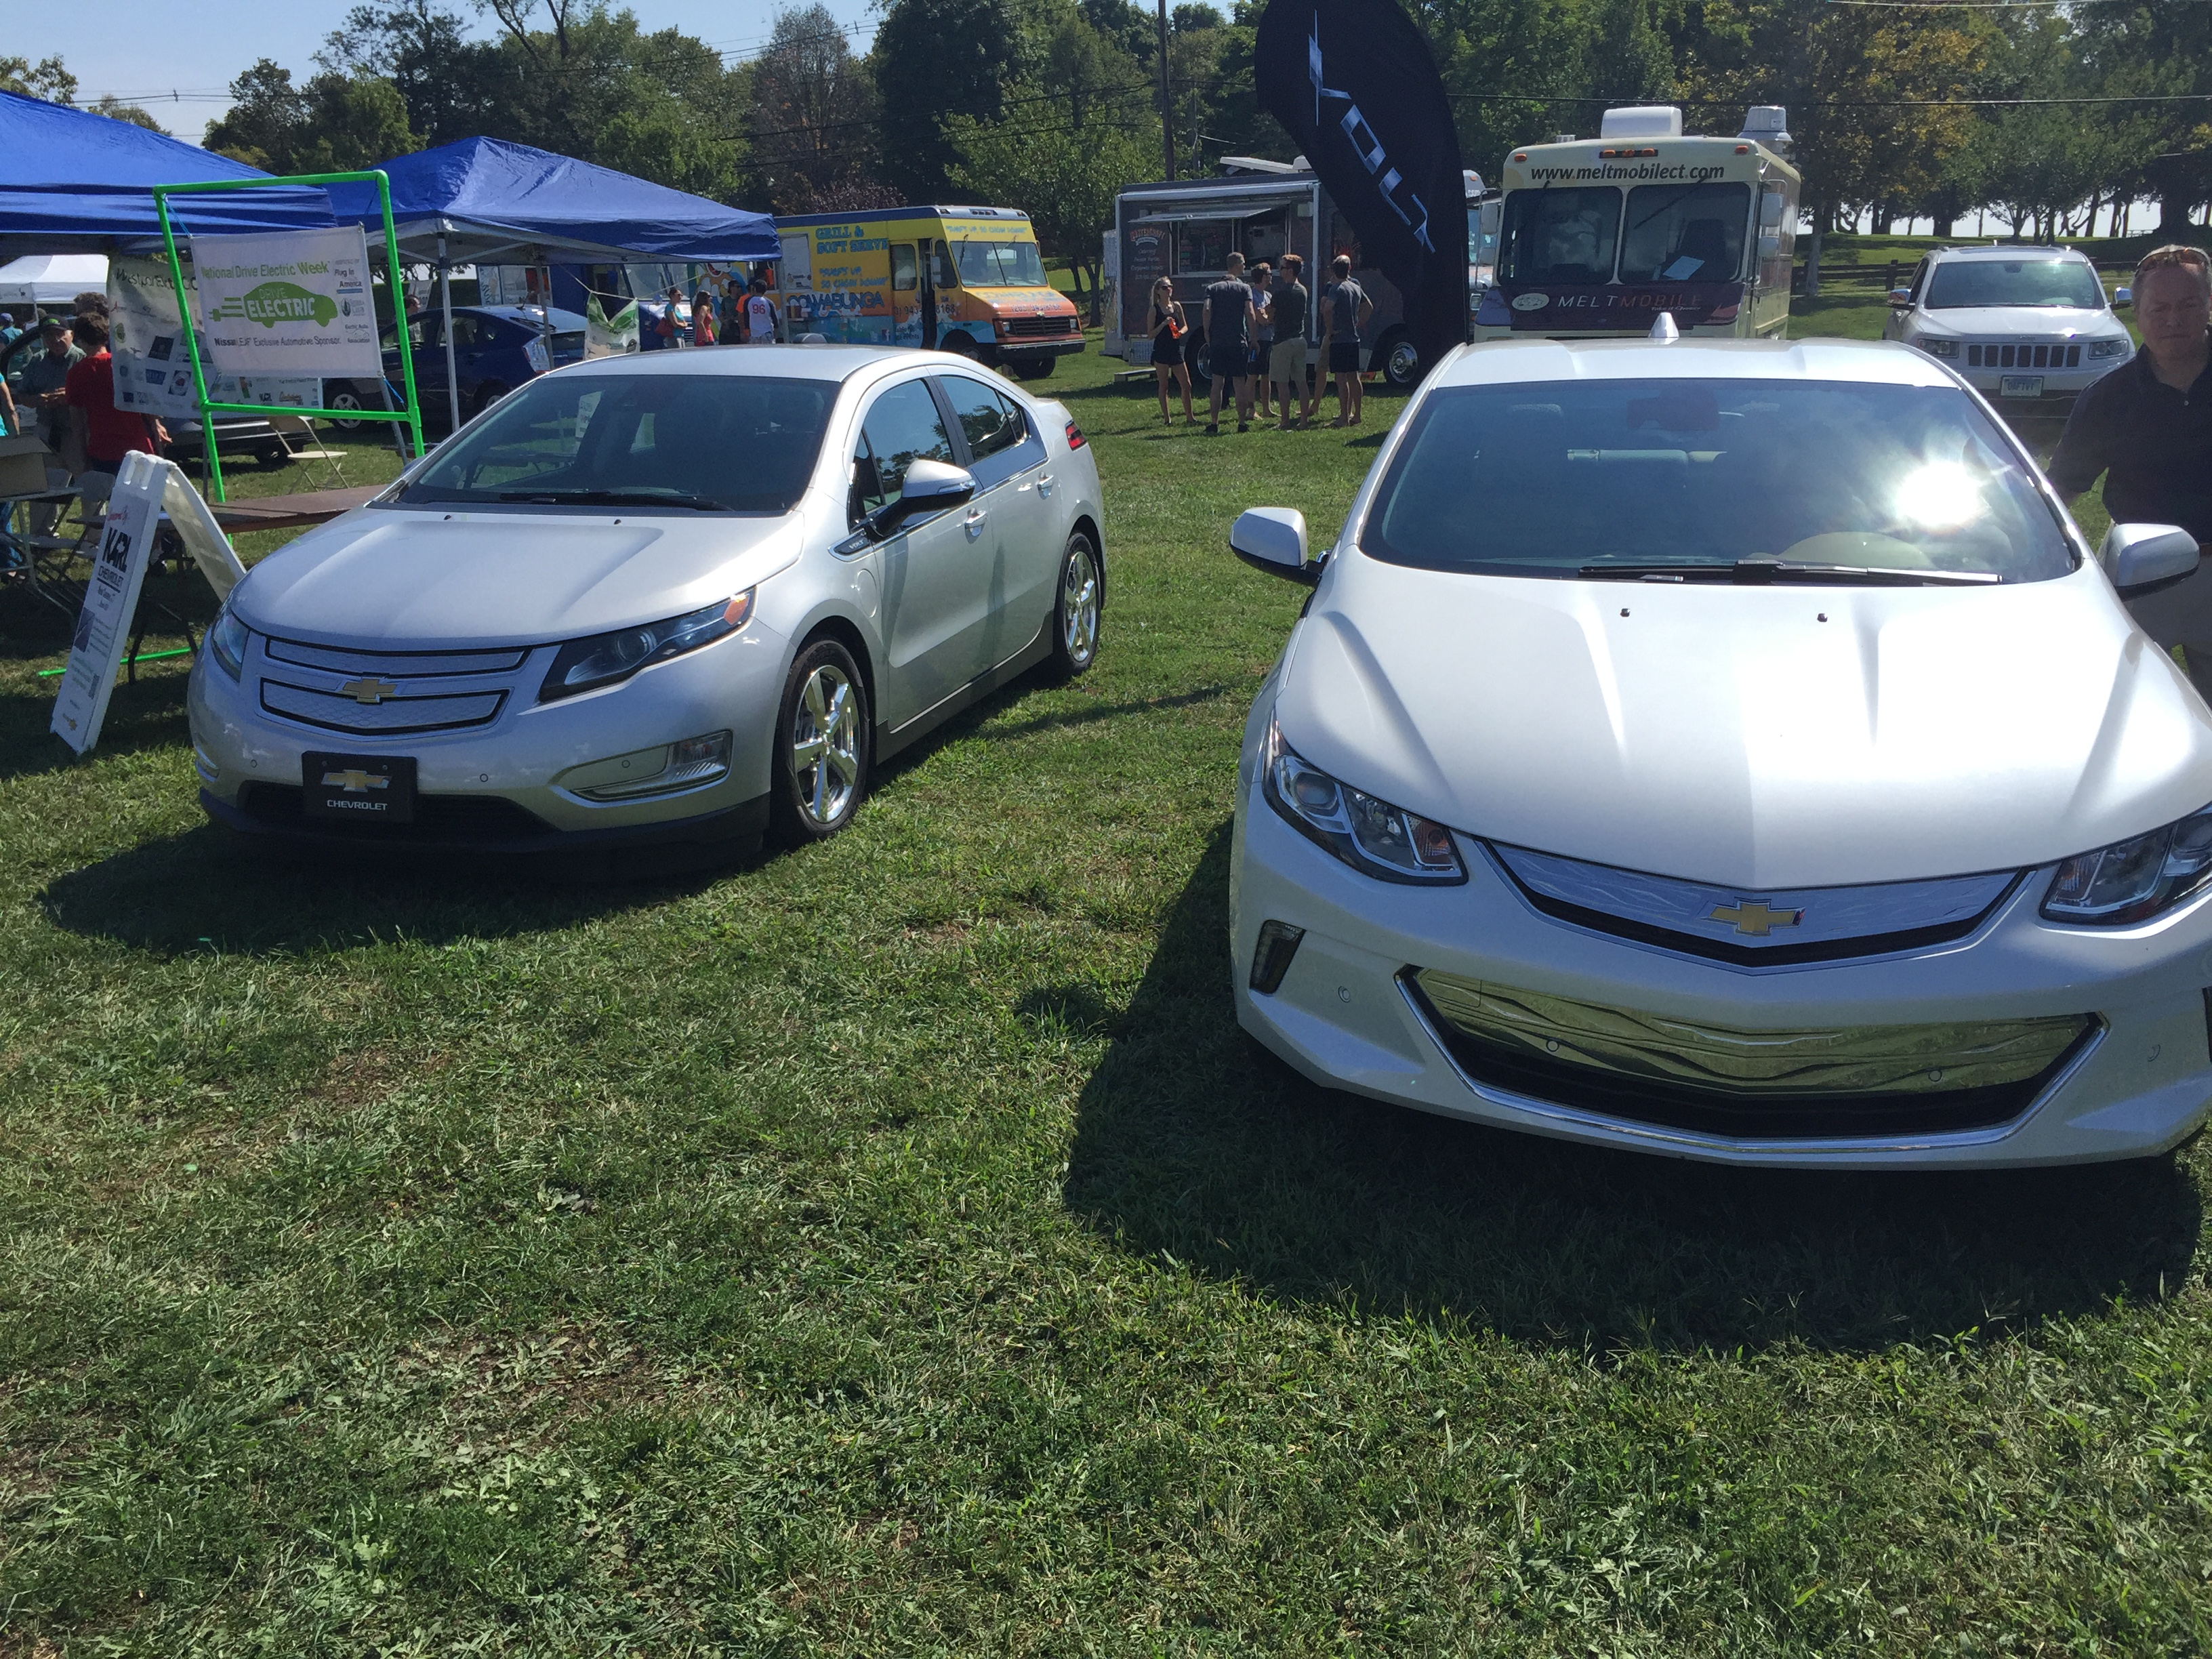 Chevy Volt Gen 1 and Gen 2